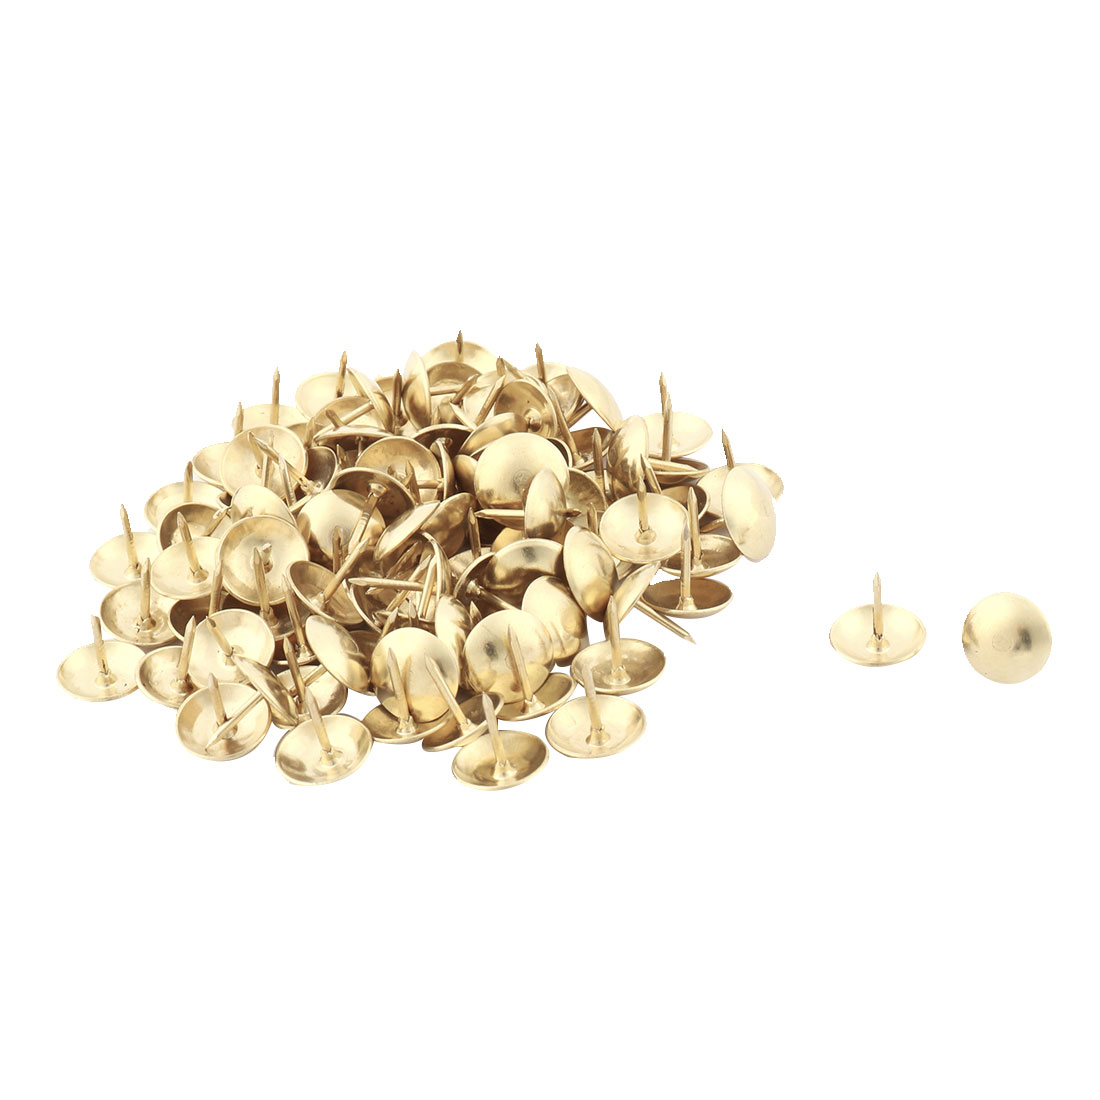 Furniture Chair Metal Round Cap Upholstery Ornament Thumb Tack Nail Gold Tone 11 x 11mm 100pcs